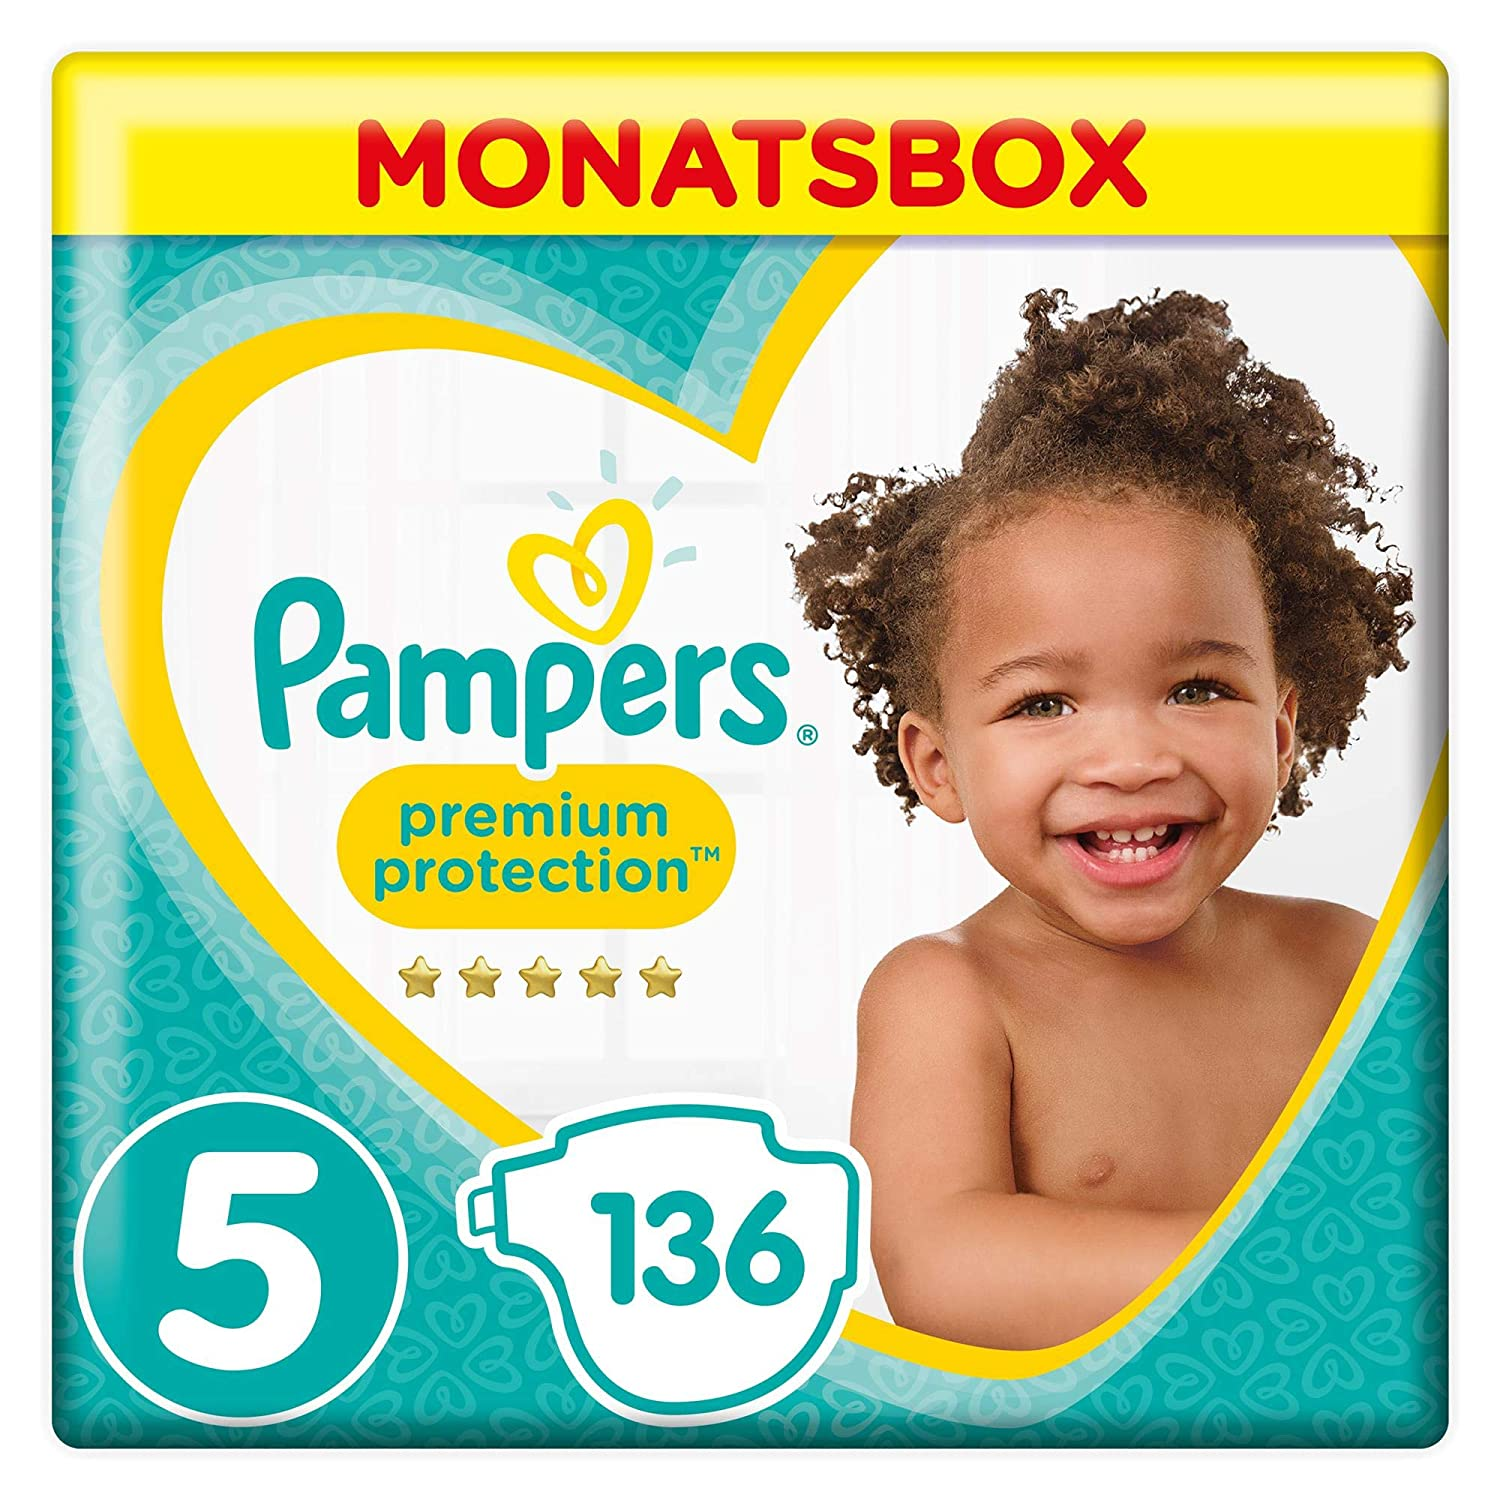 Pampers Premium Protection Monatsbox Vorteils-Set: Premium Protection Windeln Gr. 4 (9-14 kg), 1 x 168 Stück und Premium Protection Pants Gr. 4 (9-15 kg), 1 x 160 Stück 1 x 160 Stück